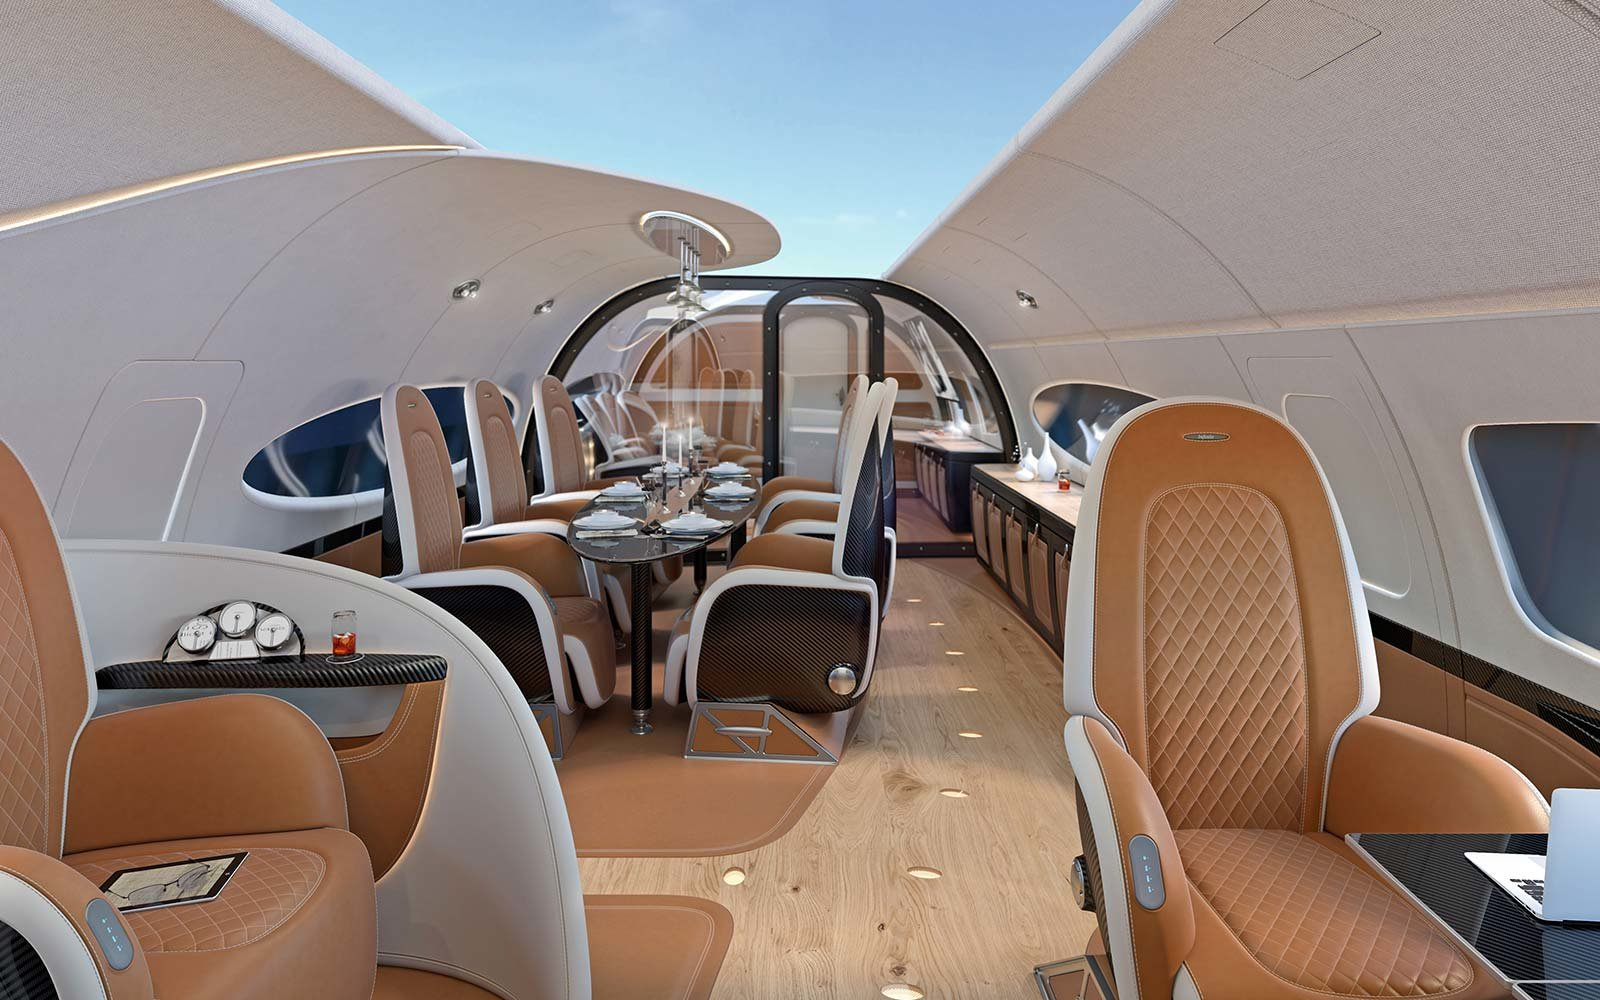 Innenausstattung A380 This Is What It's Like Inside A Private Jet Designed For